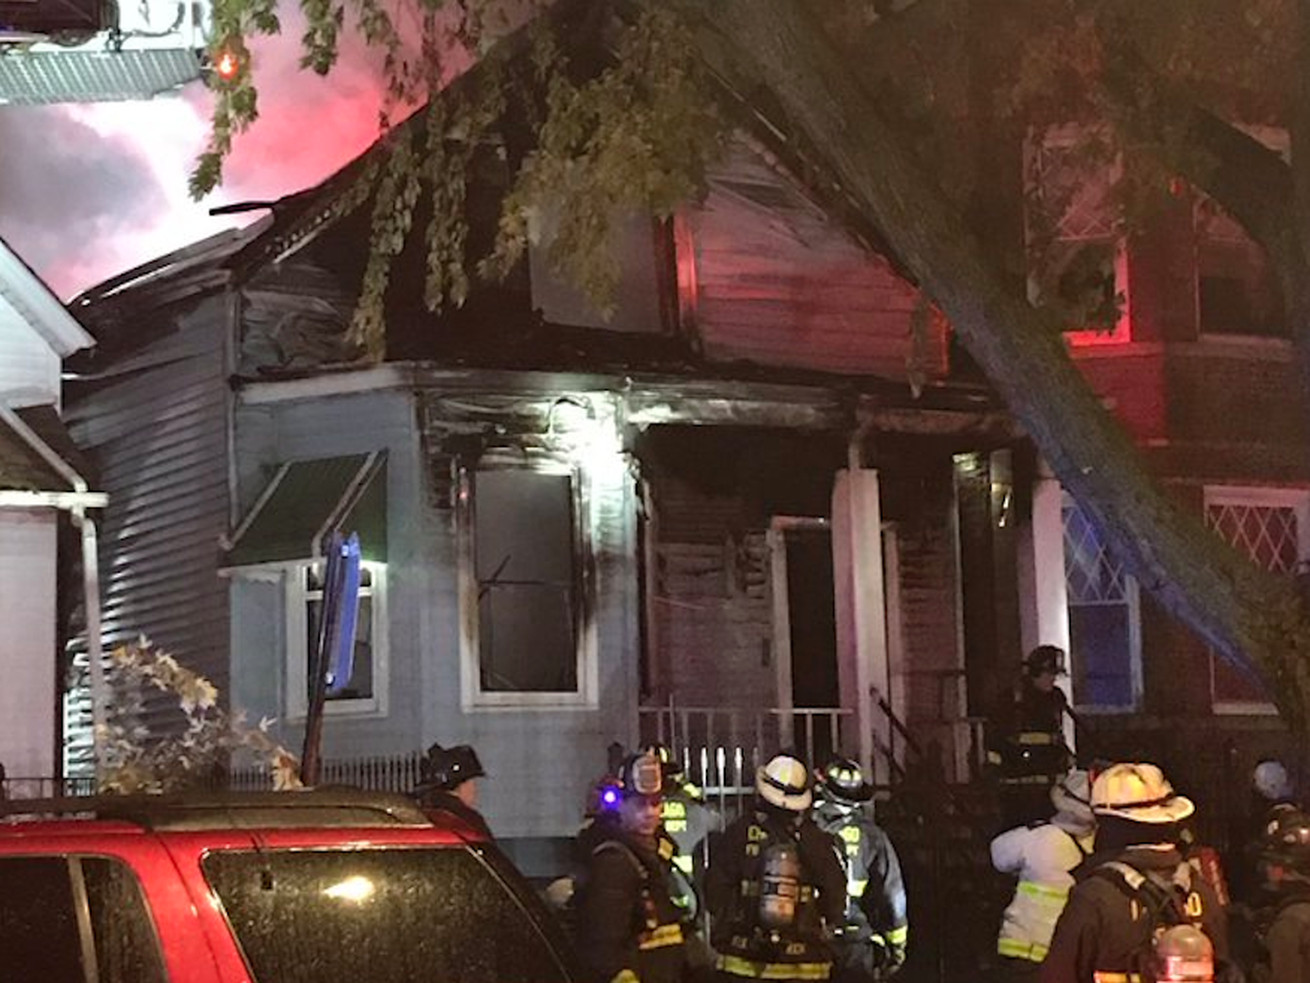 Firefighters are trying to extinguish a fire in Logan Square.